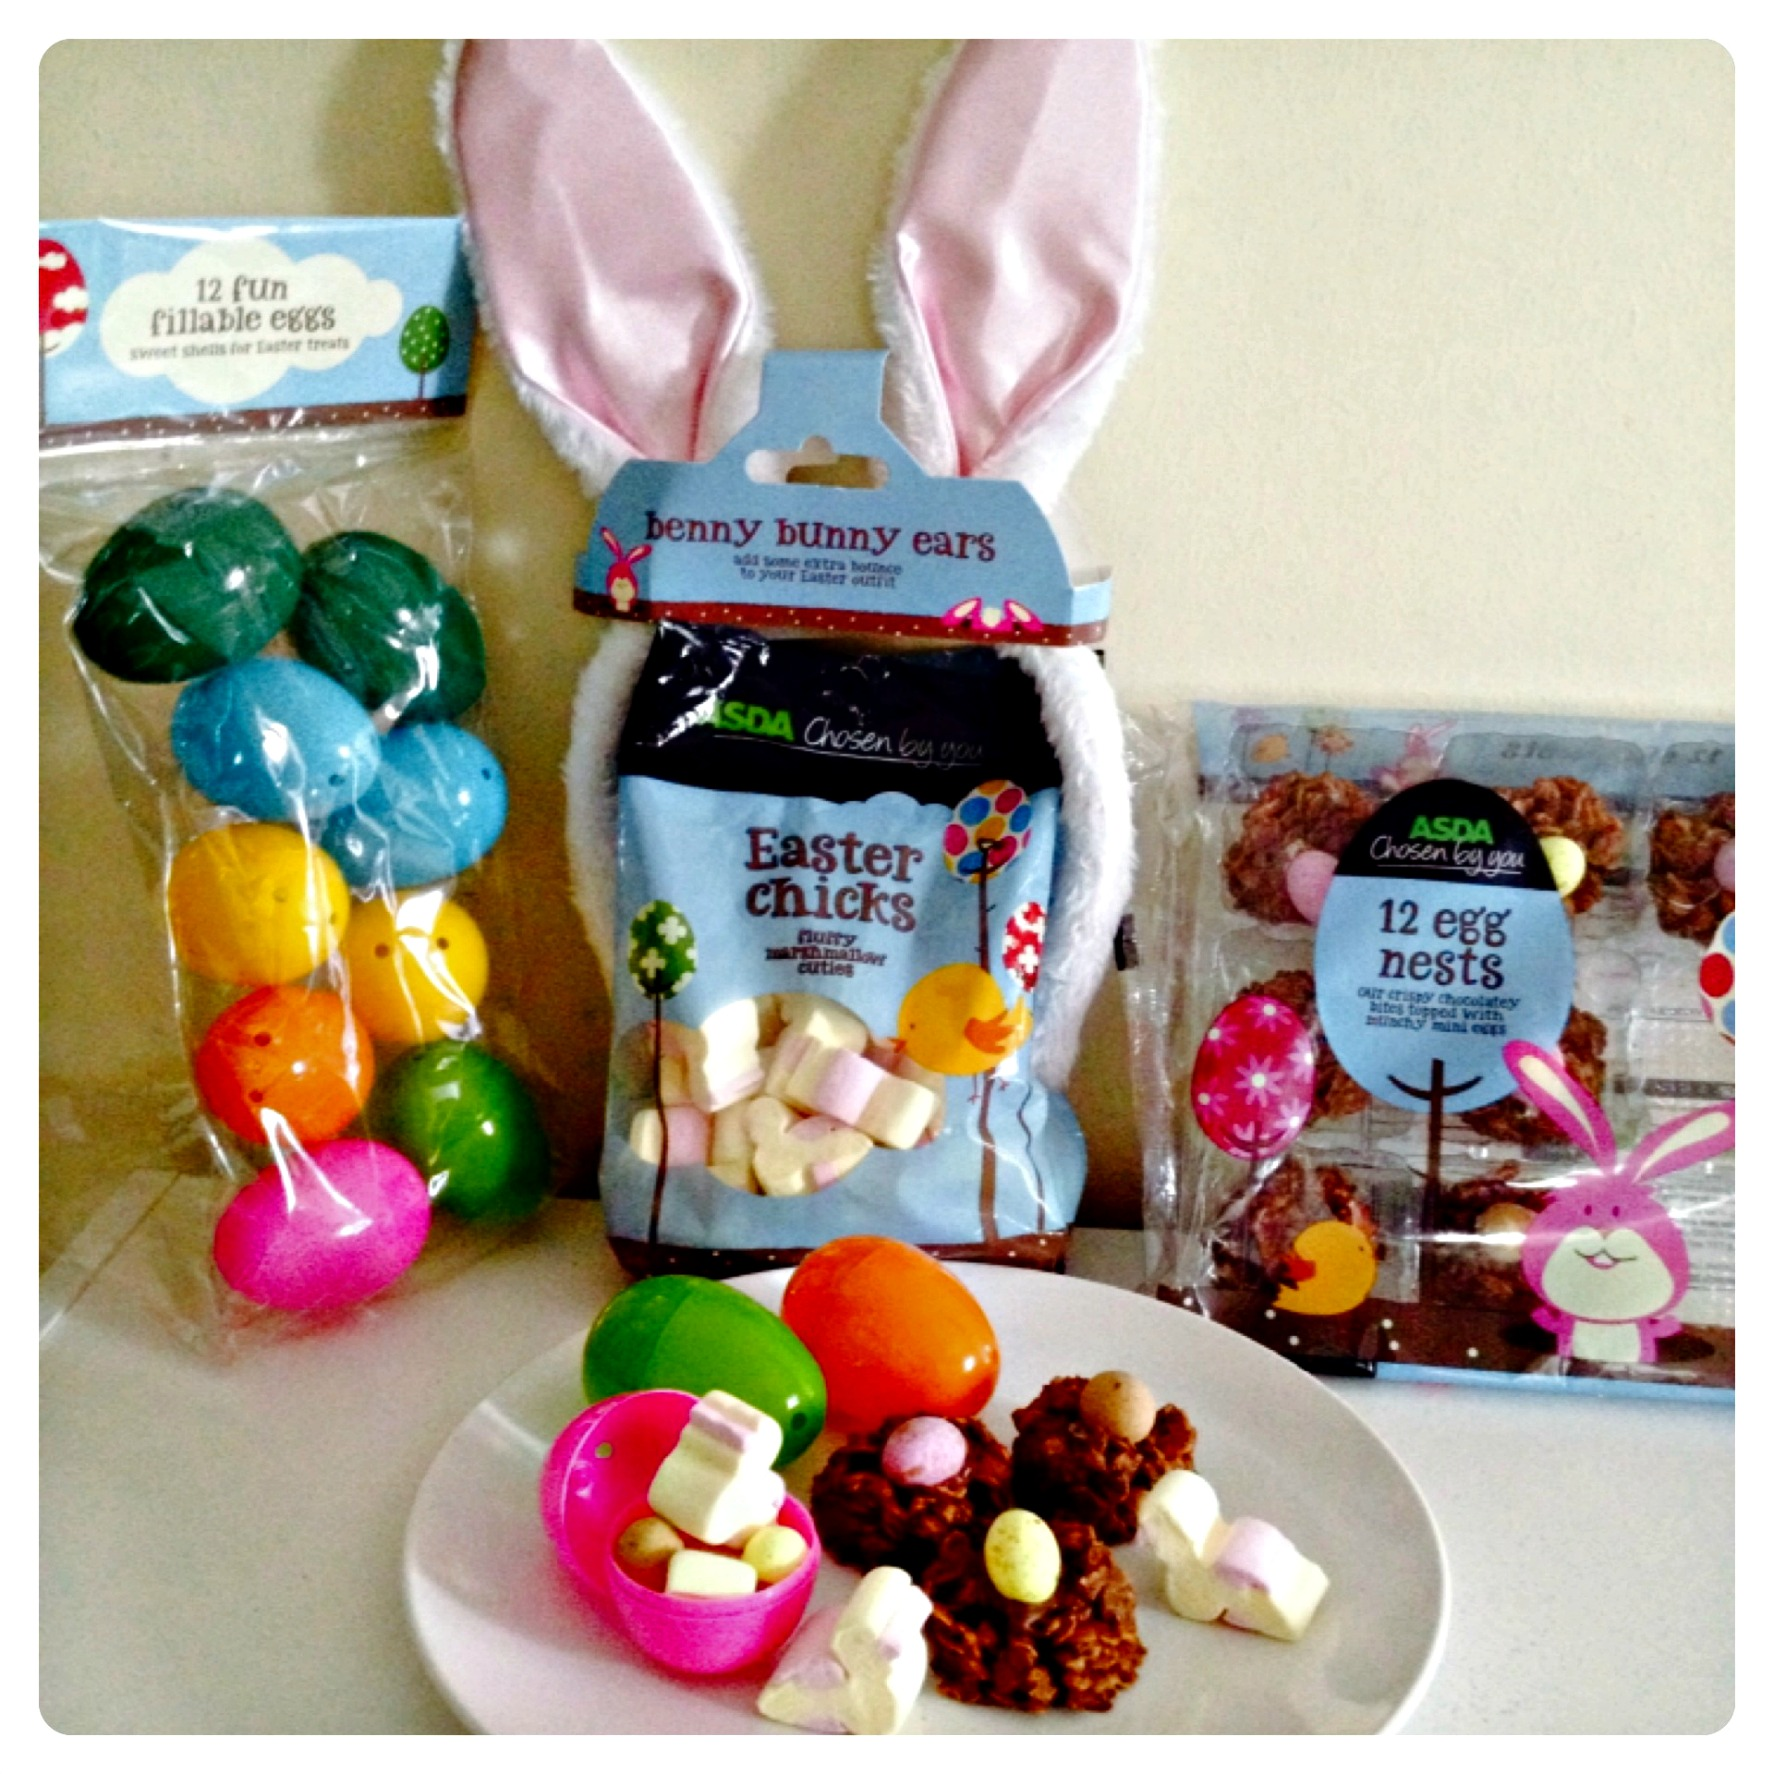 Easter treats and crafts by asda lilinha angels world uk food easter treats at asda negle Images